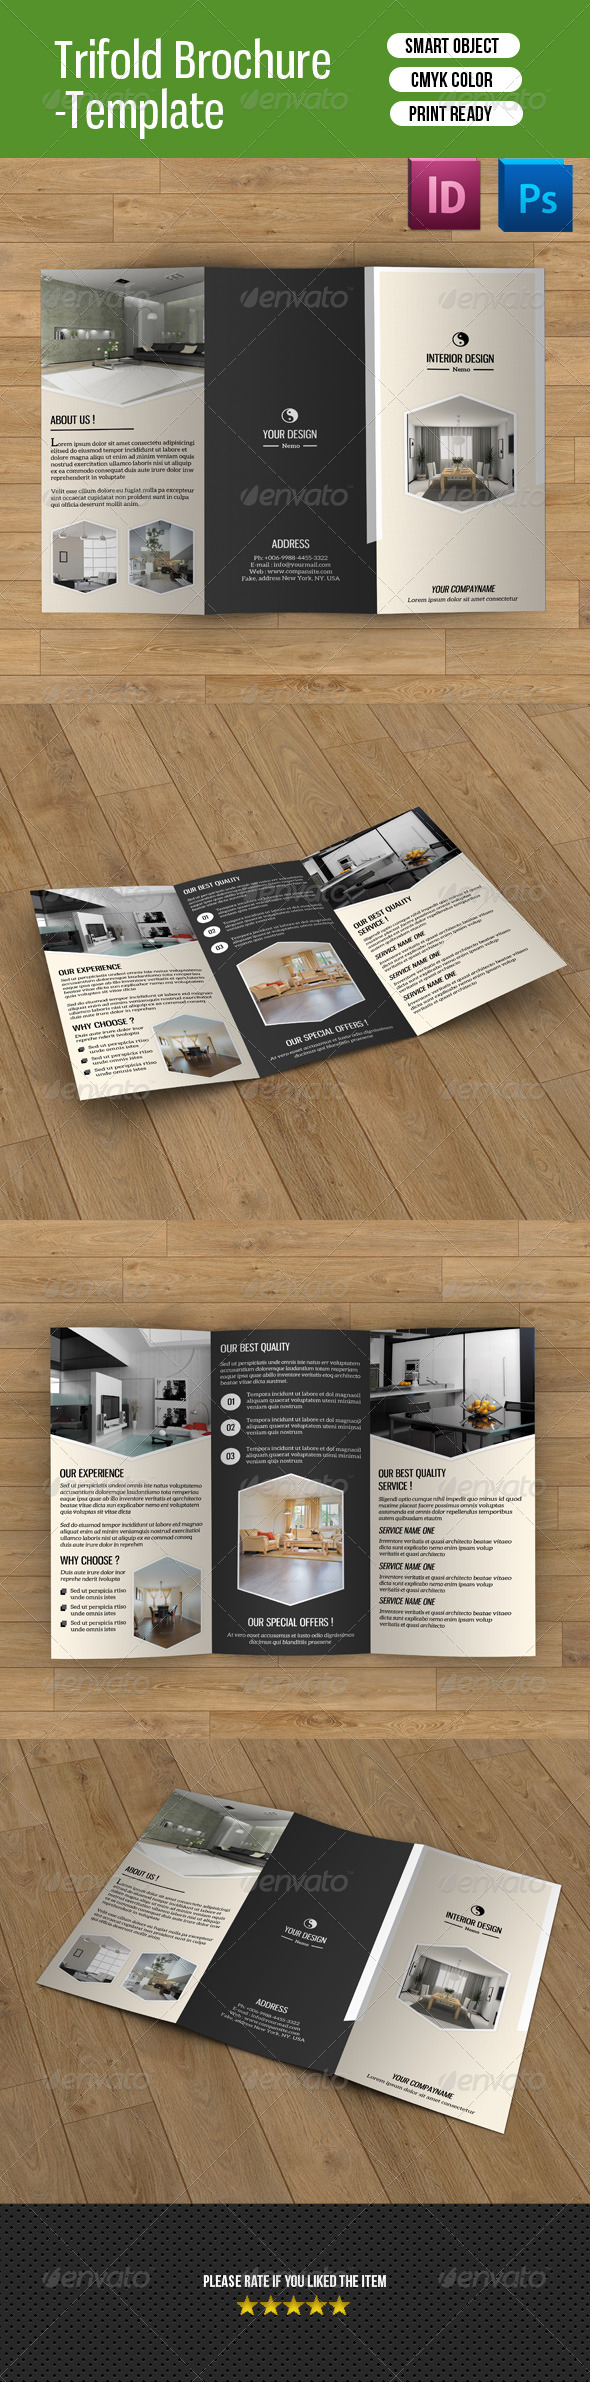 GraphicRiver Trifold Brochure for Interior Design-V48 8558208